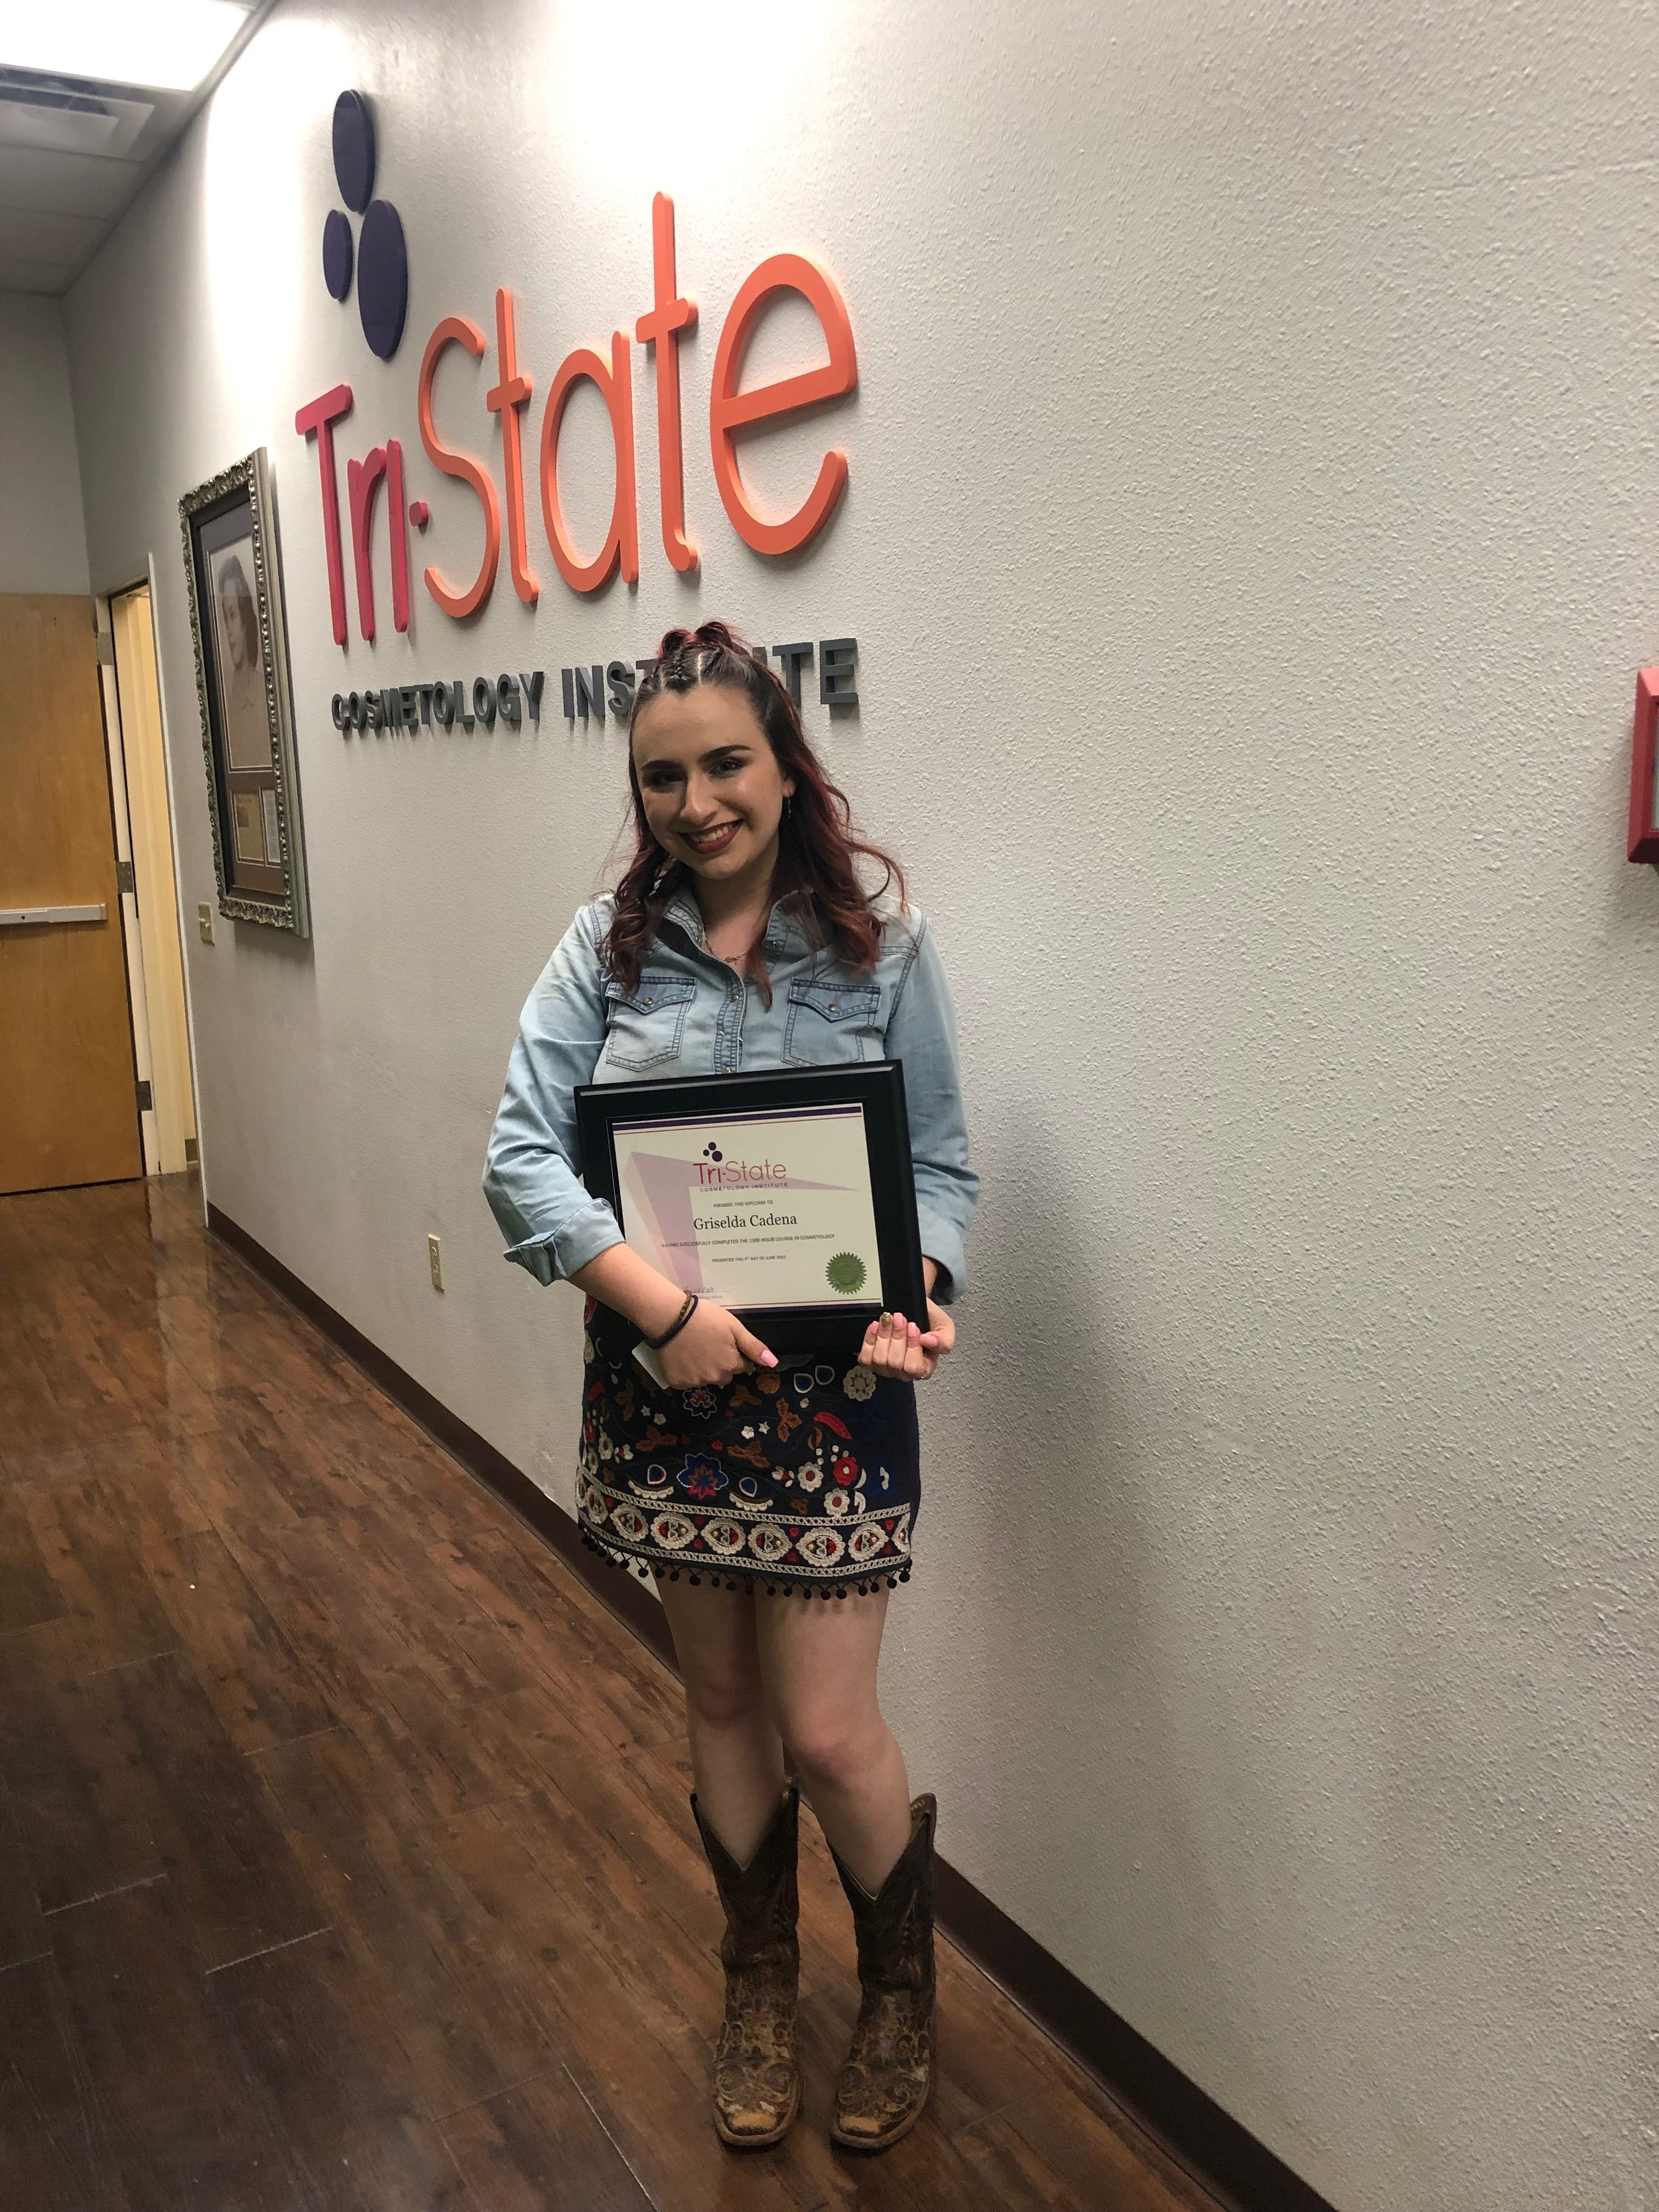 Tristate Cosmetology Institute - El Paso Tx - Tristate